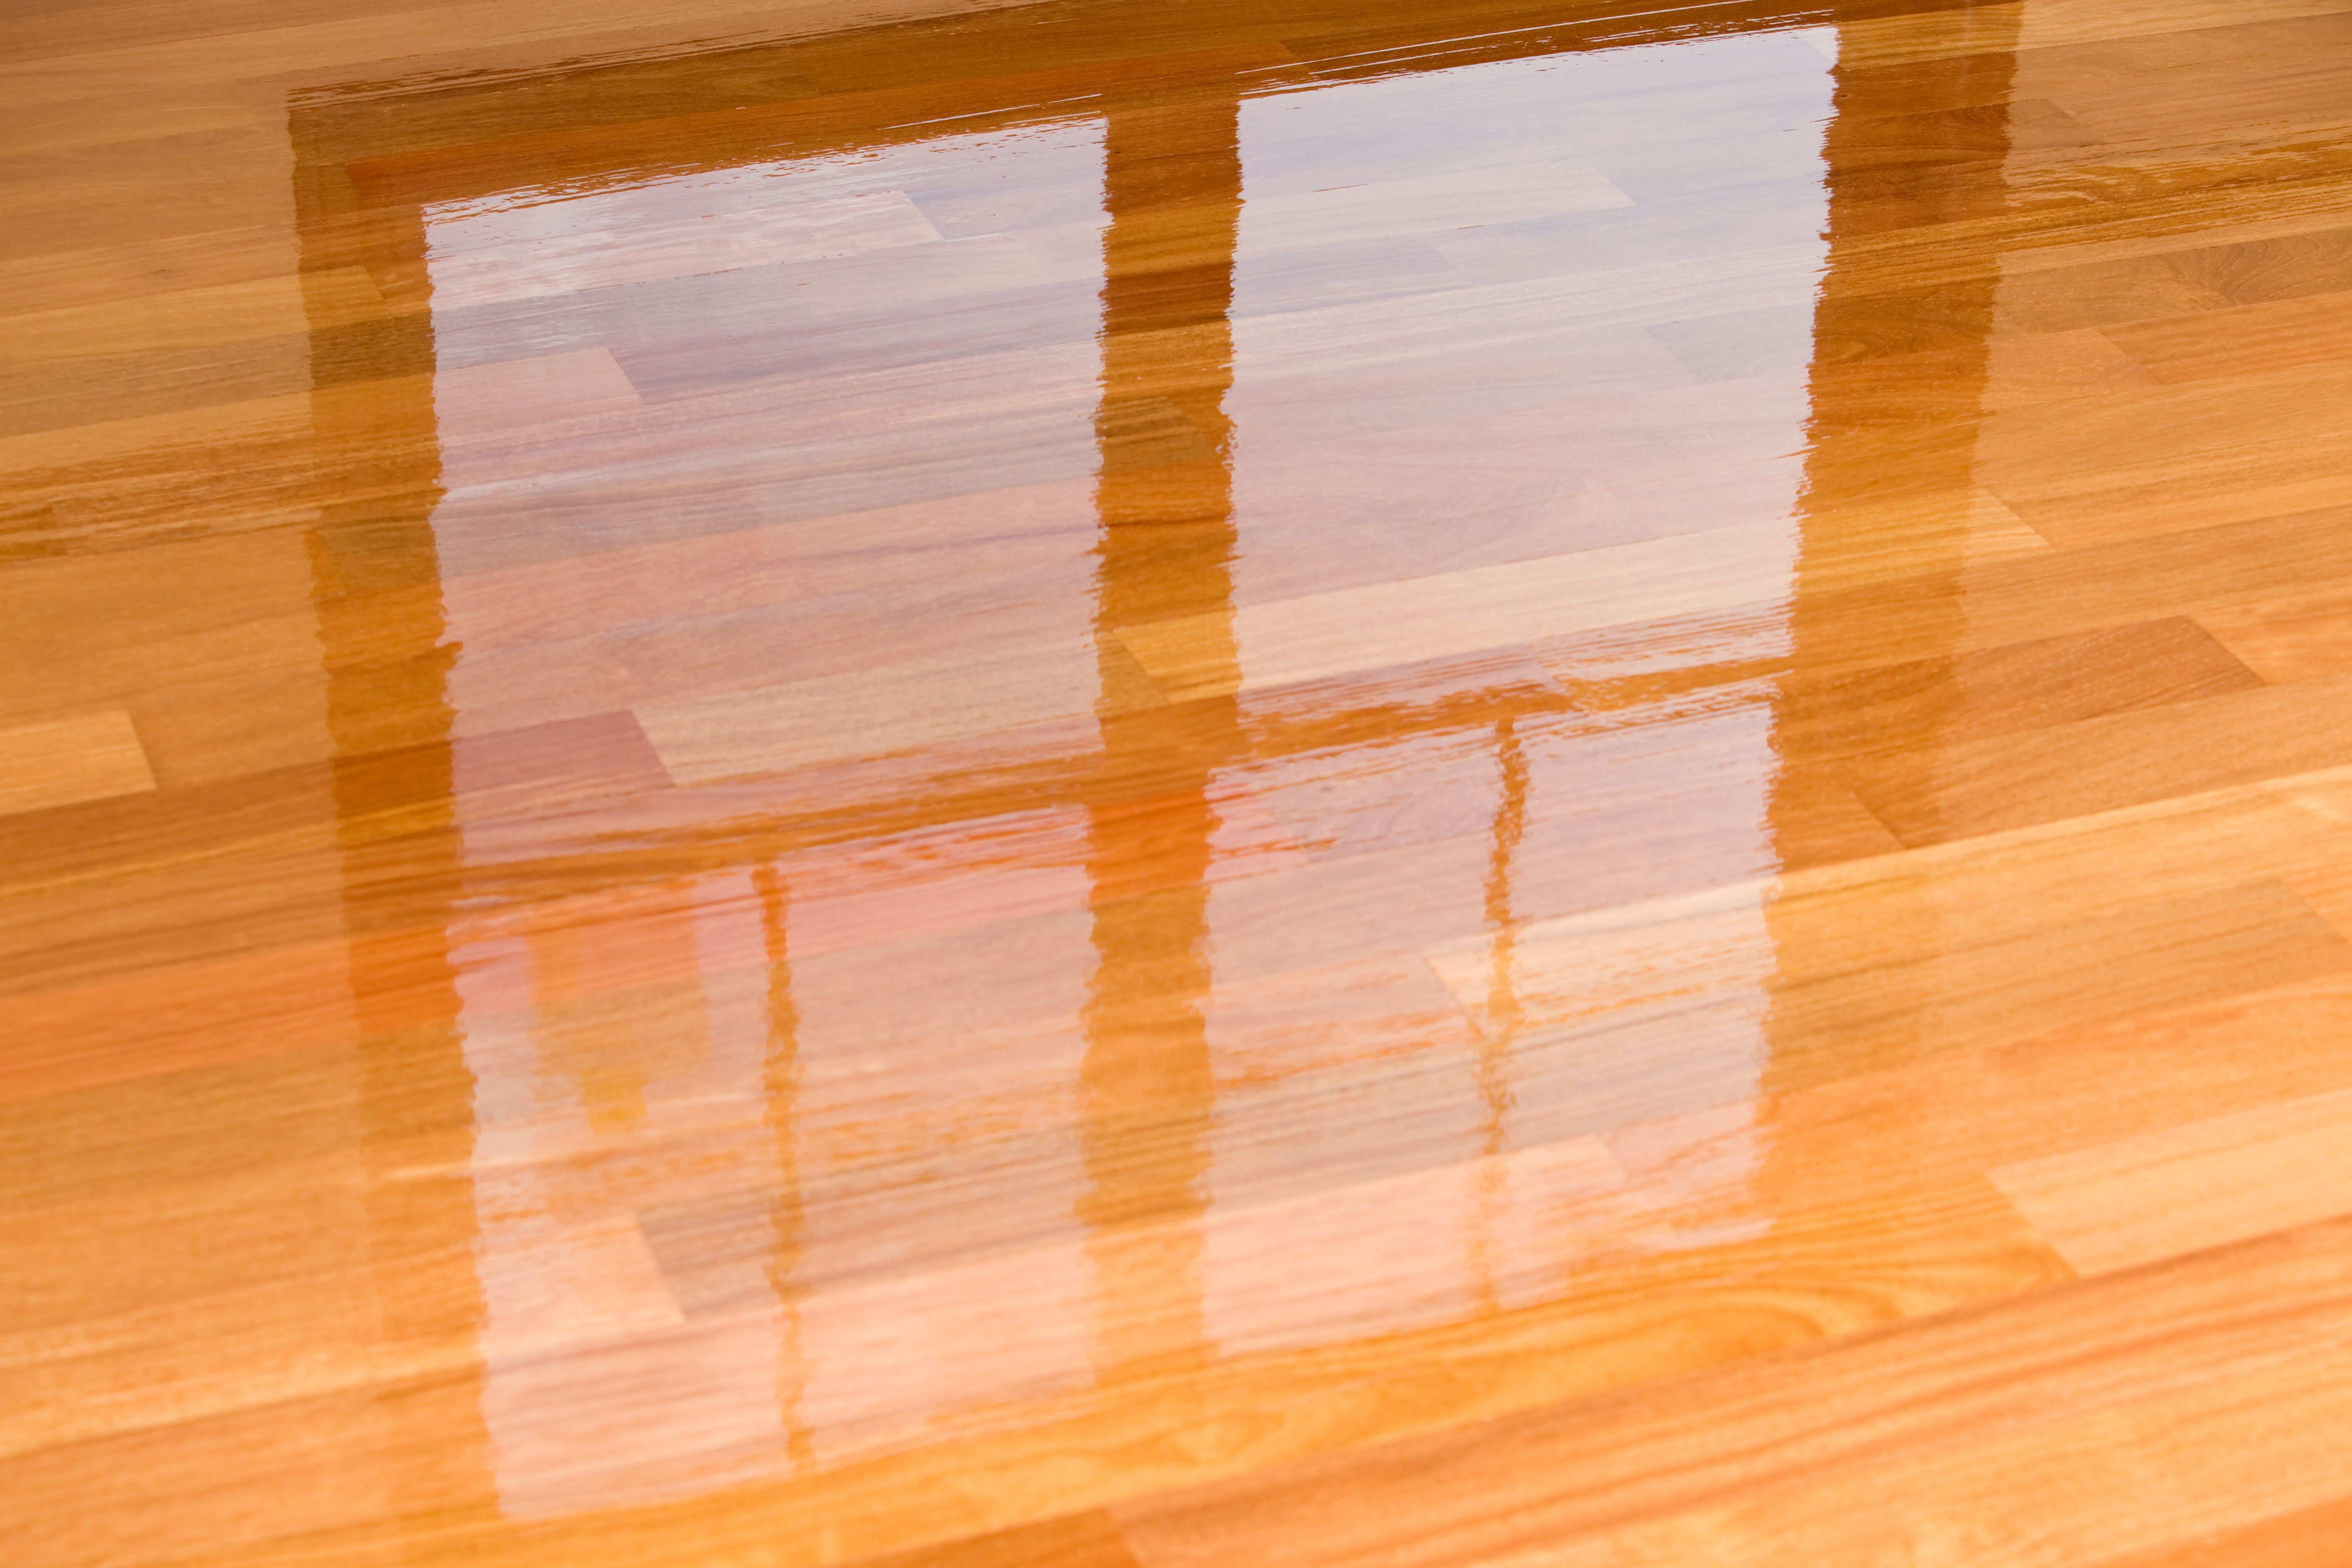 1 1 4 hardwood flooring of guide to laminate flooring water and damage repair throughout wet polyurethane on new hardwood floor with window reflection 183846705 582e34da3df78c6f6a403968